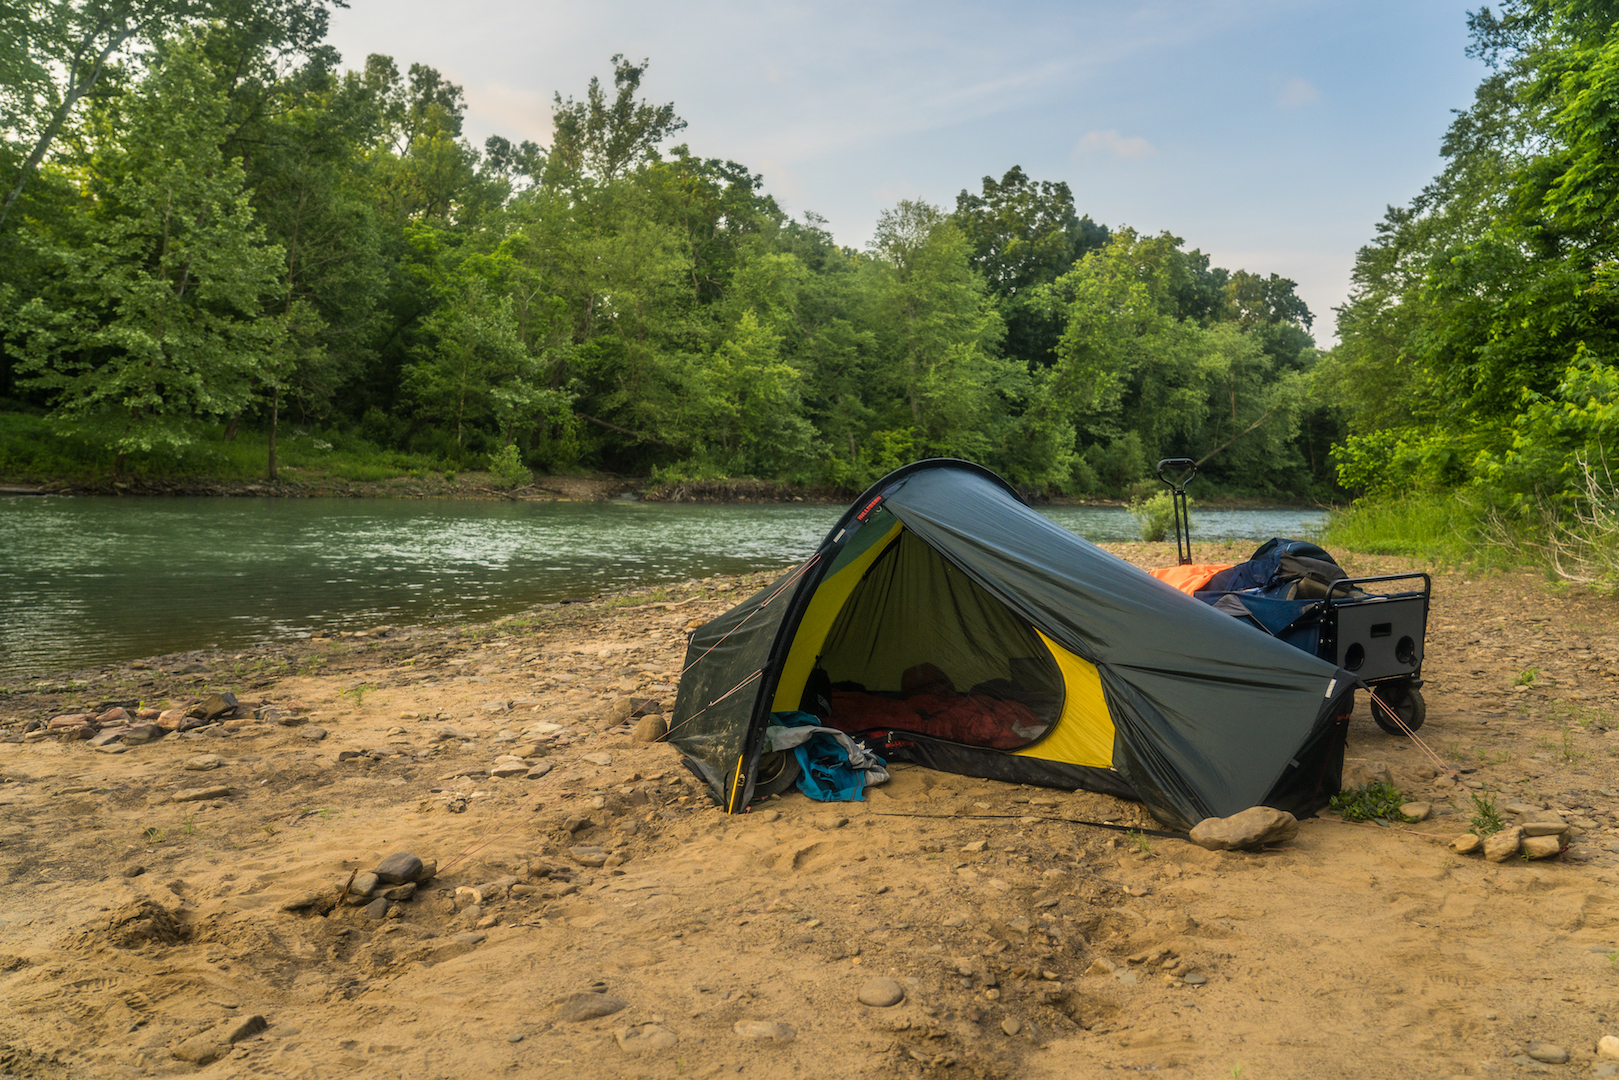 Hilleberg Enan Tent | Review Outdoors